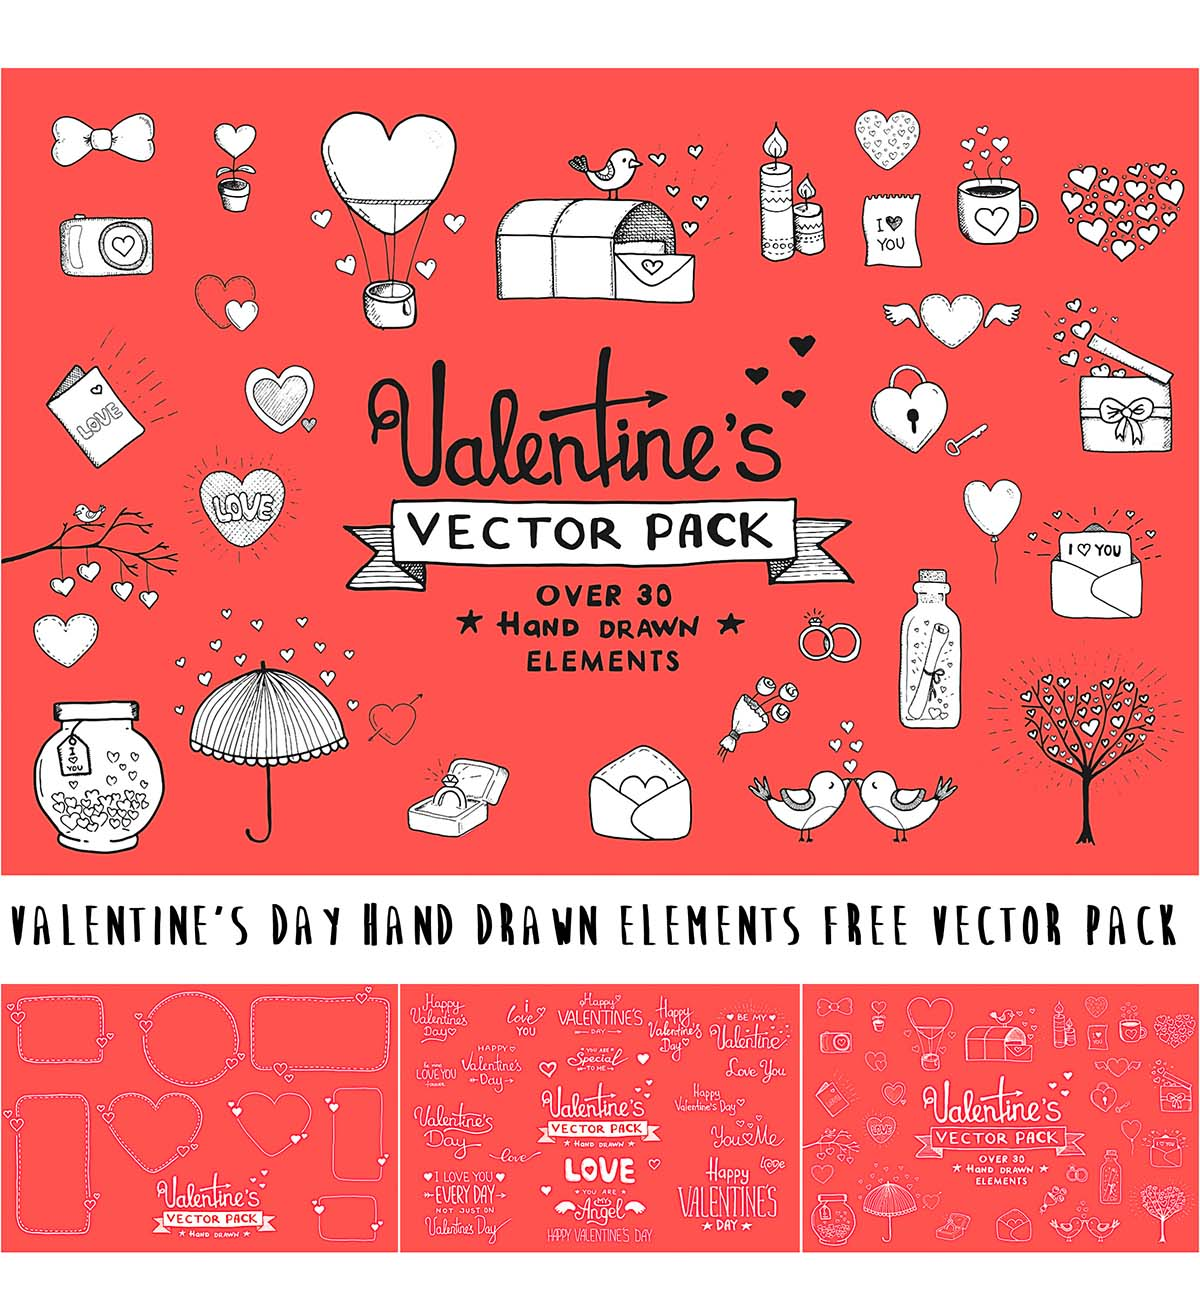 Hand drawn Valentine's day elements